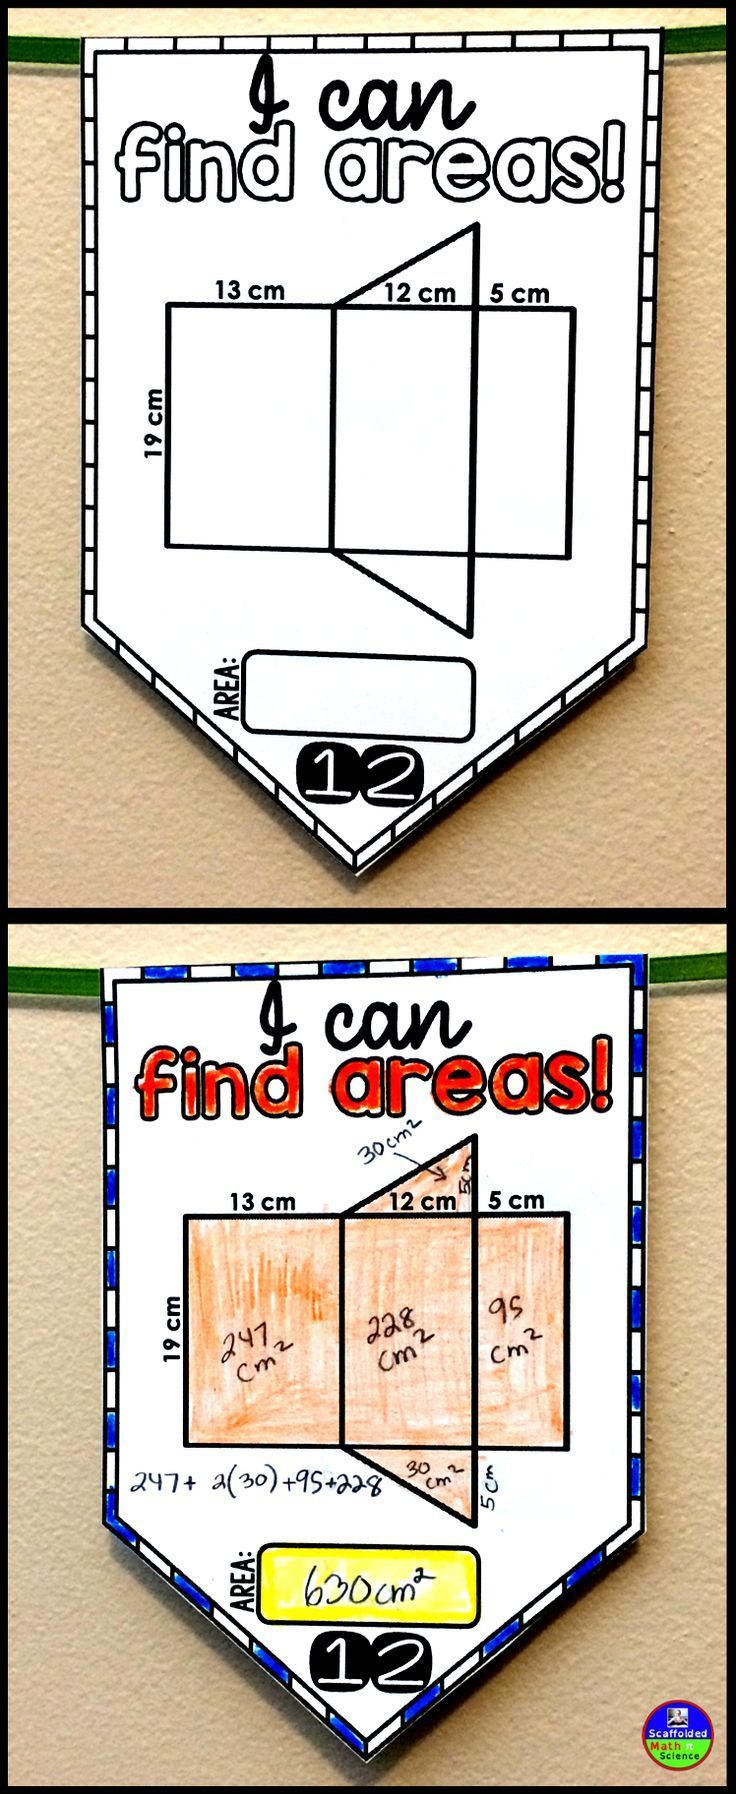 In this collaborative math pennant activity, students find the areas of nets (rectangular prisms, triangular prisms, square pyramids, triangular pyramids) and composite figures that are made of rectangles and triangles. There is no need to know the formula for the area of a trapezoid to compute any of the areas. Once pennants are complete, they can be colored and hung on a string to make a math themed bulletin board display.